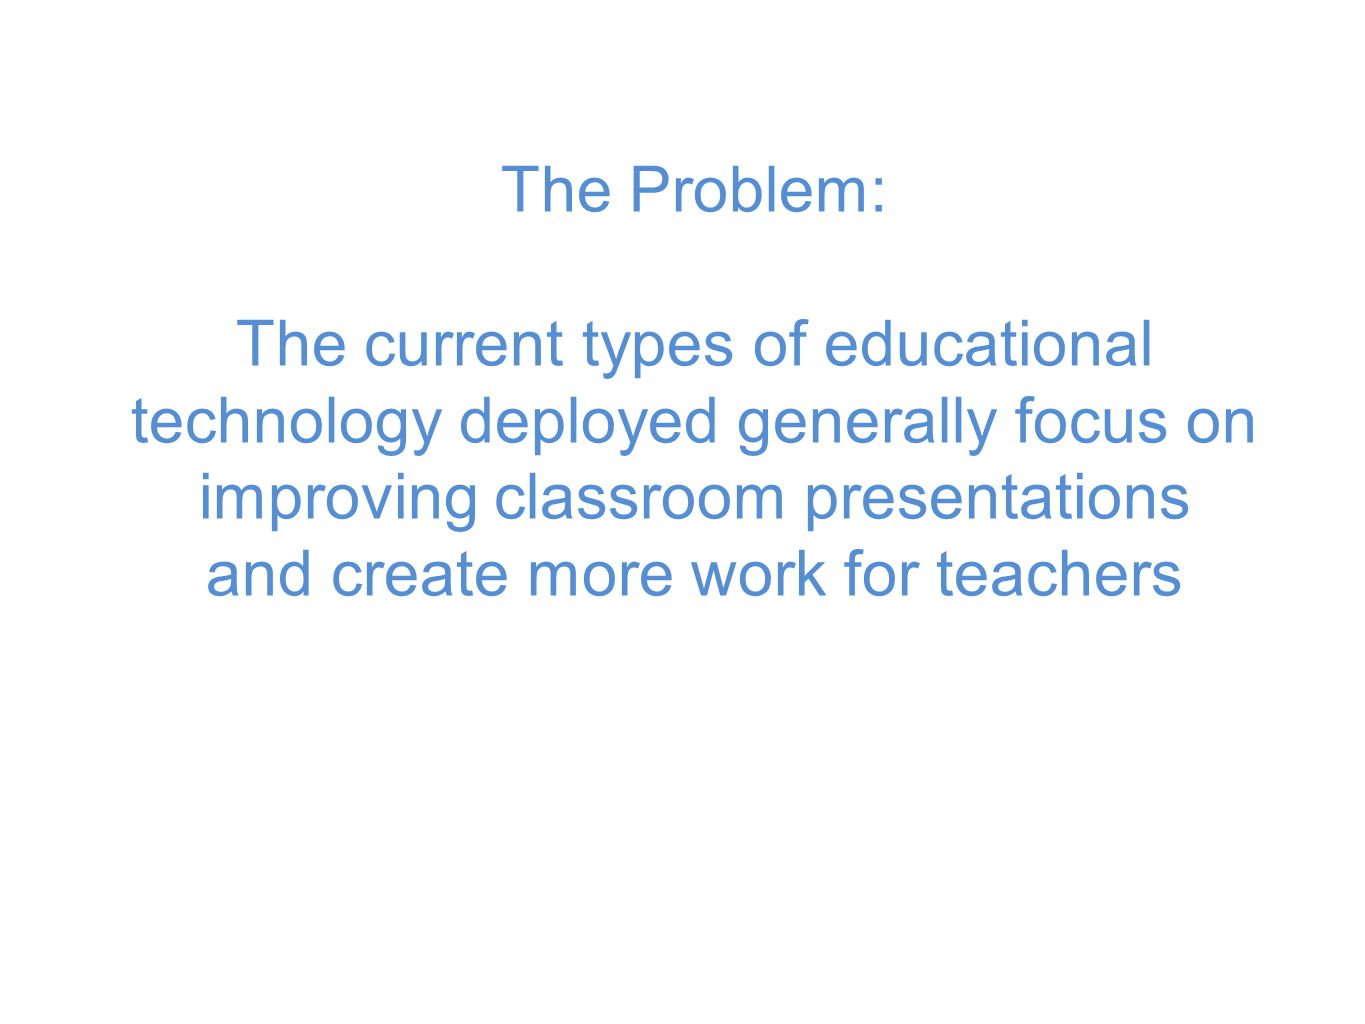 The Problem: The current types of educational technology deployed generally focus on improving classroom presentations and create more work for teachers